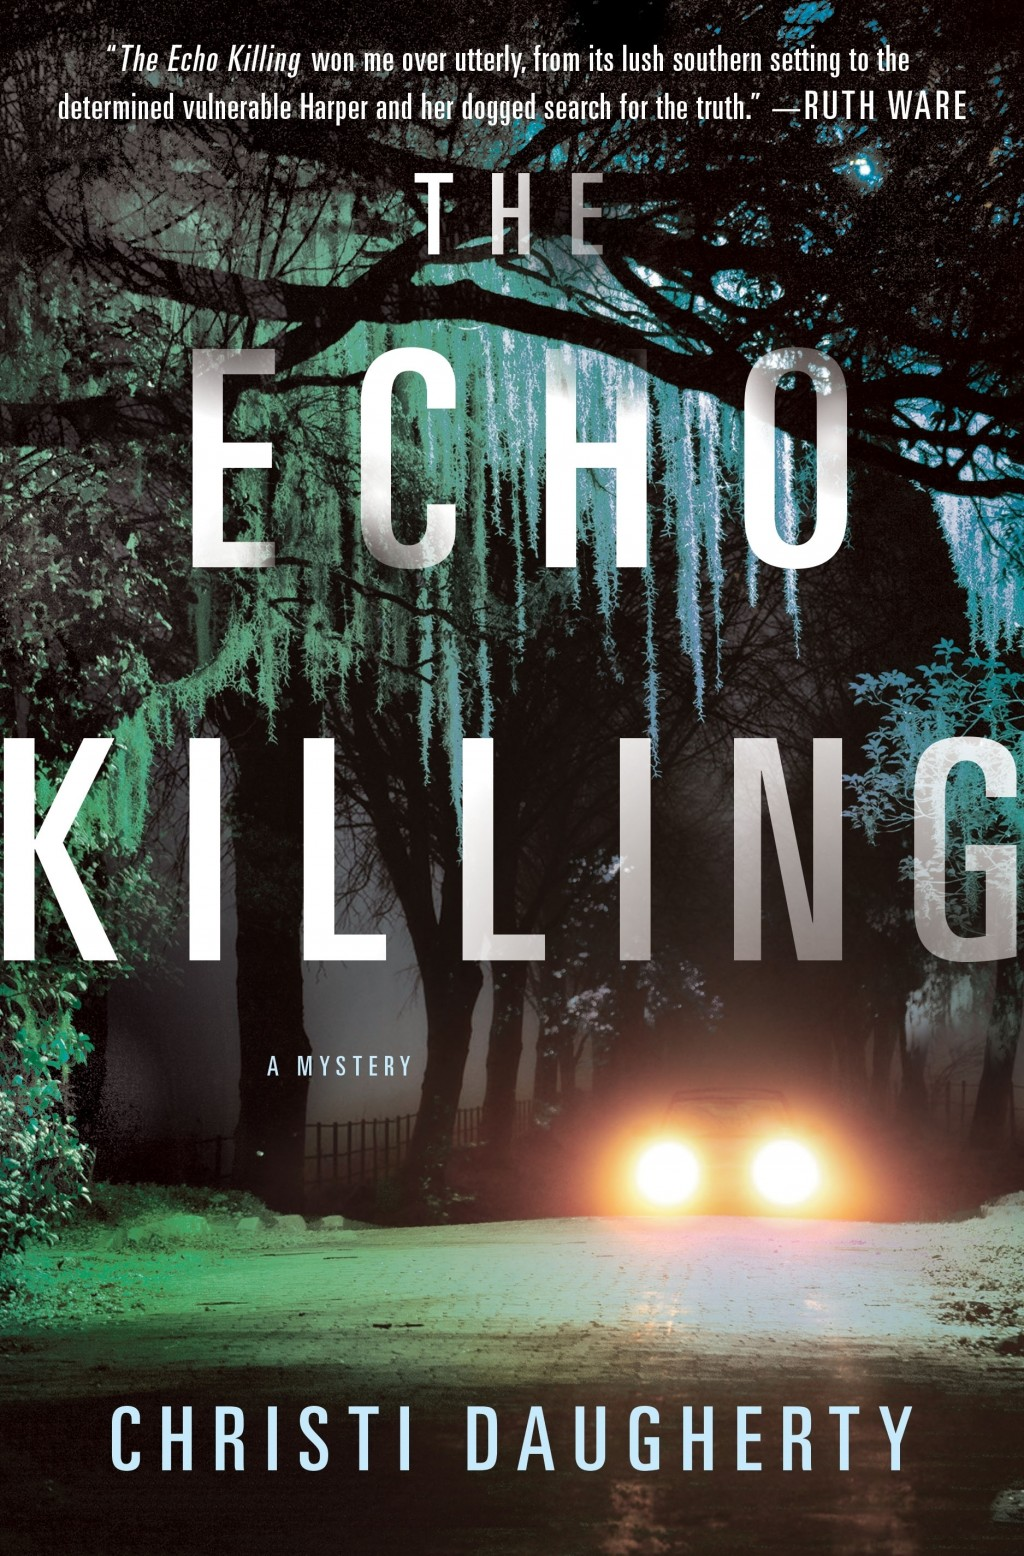 """This cover image released by St. Martin's Press shows """"The Echo Killing,"""" by Christi Daugherty. (St. Martin's Press via AP)"""